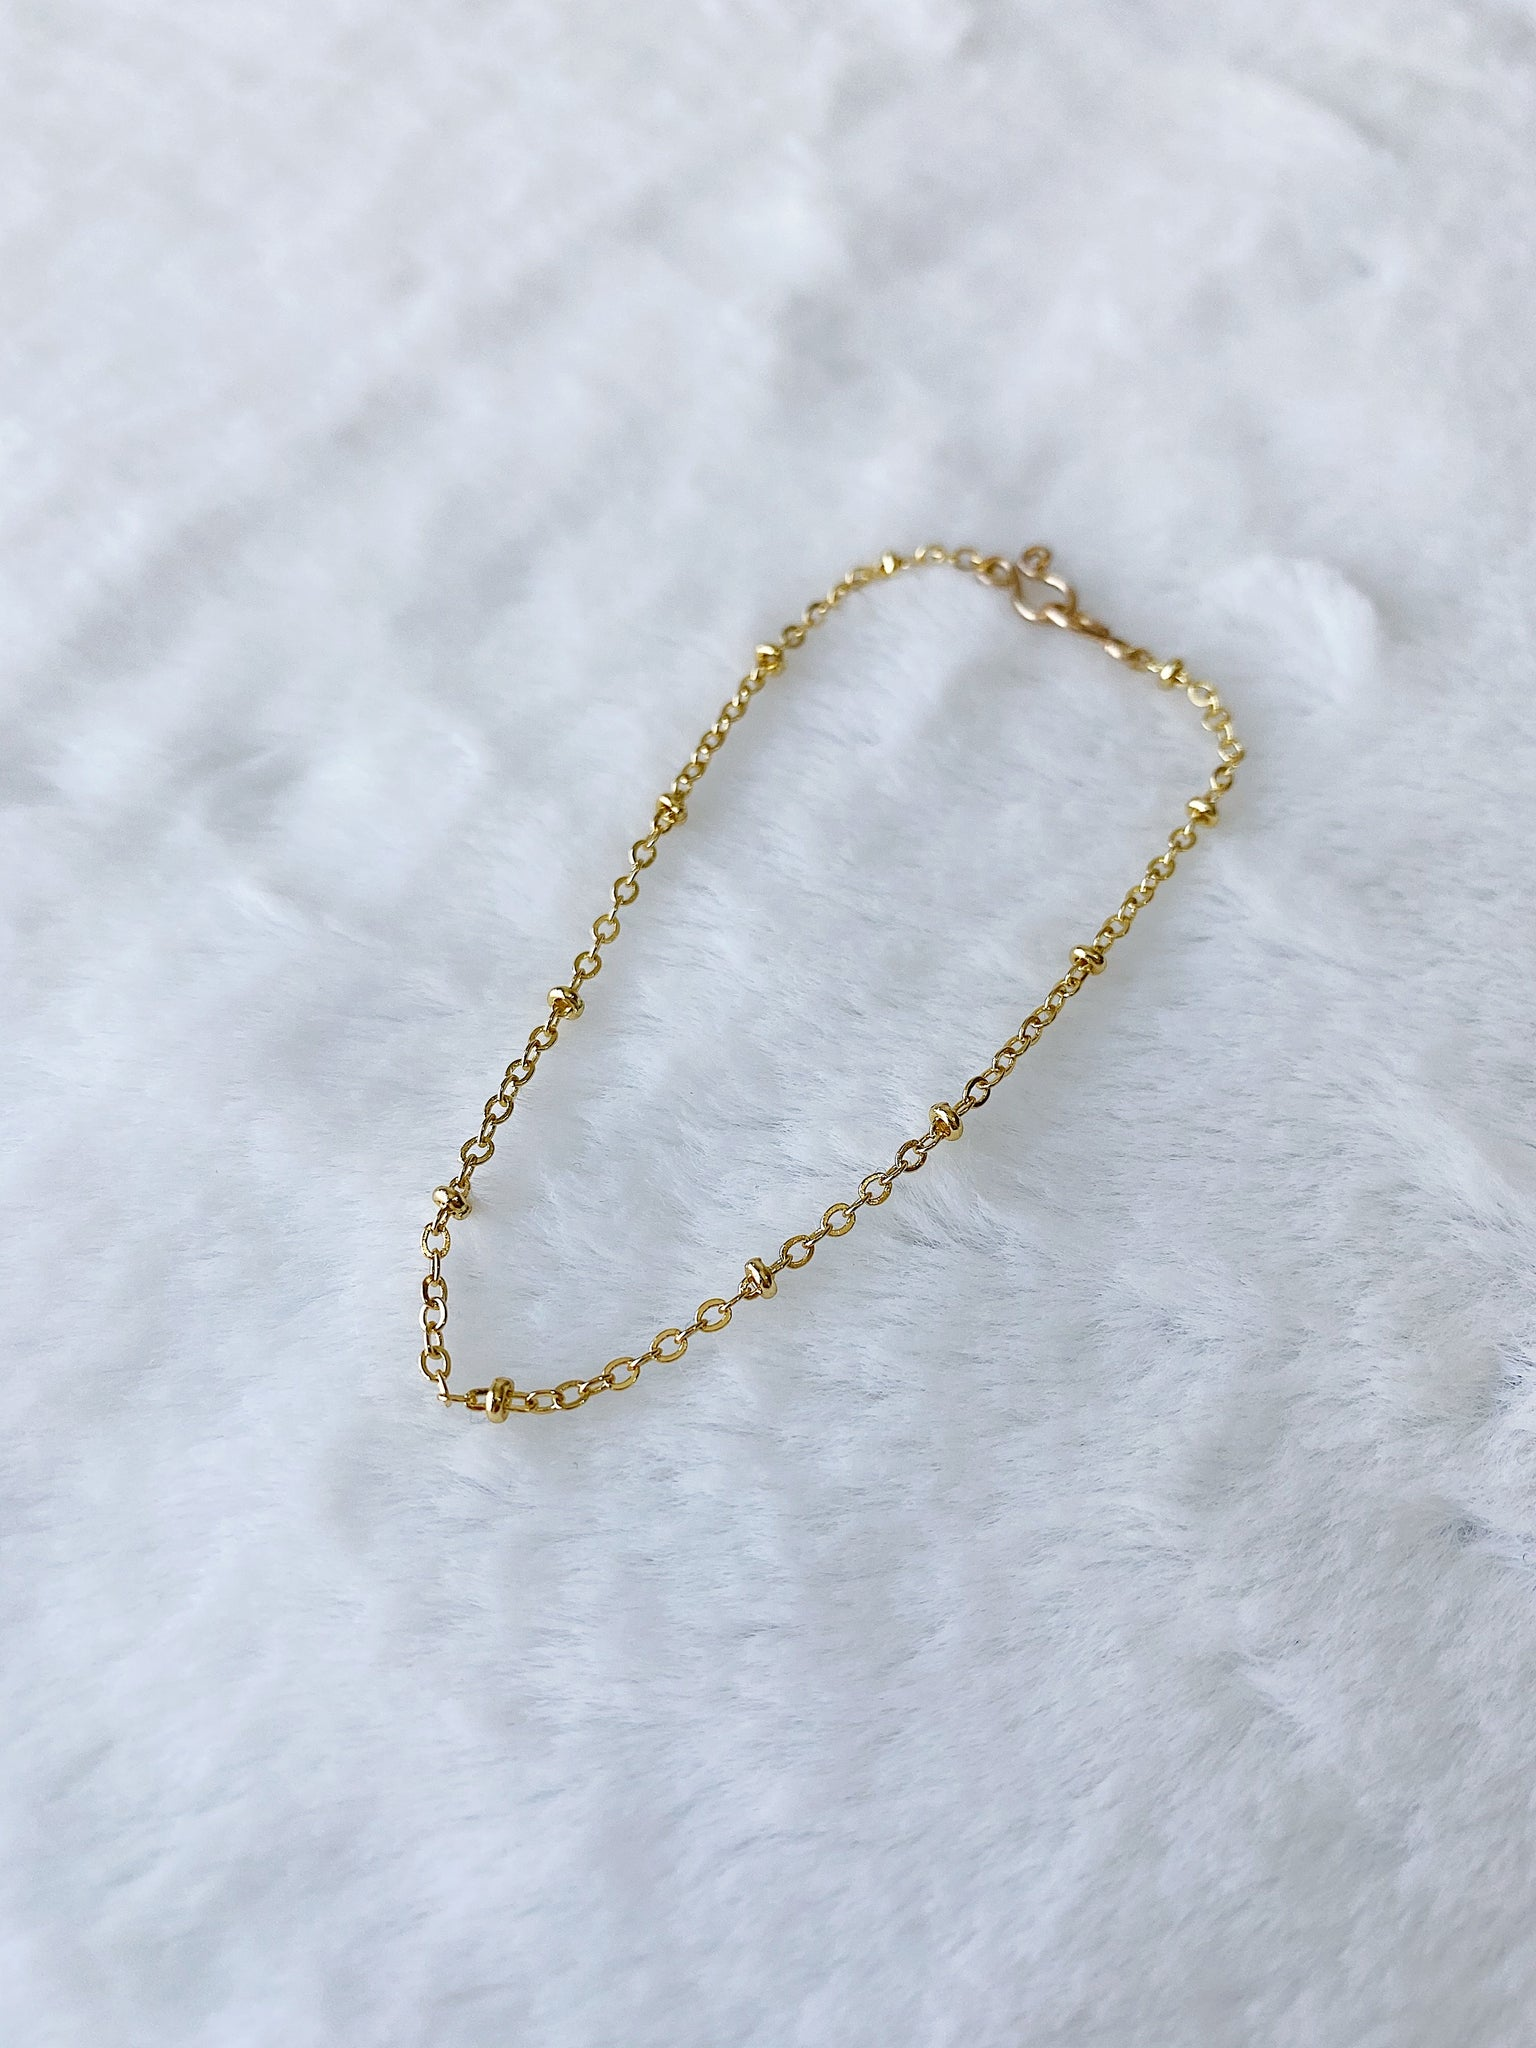 24k Gold Fill Dew Drops Chain Bracelet ~ Morph